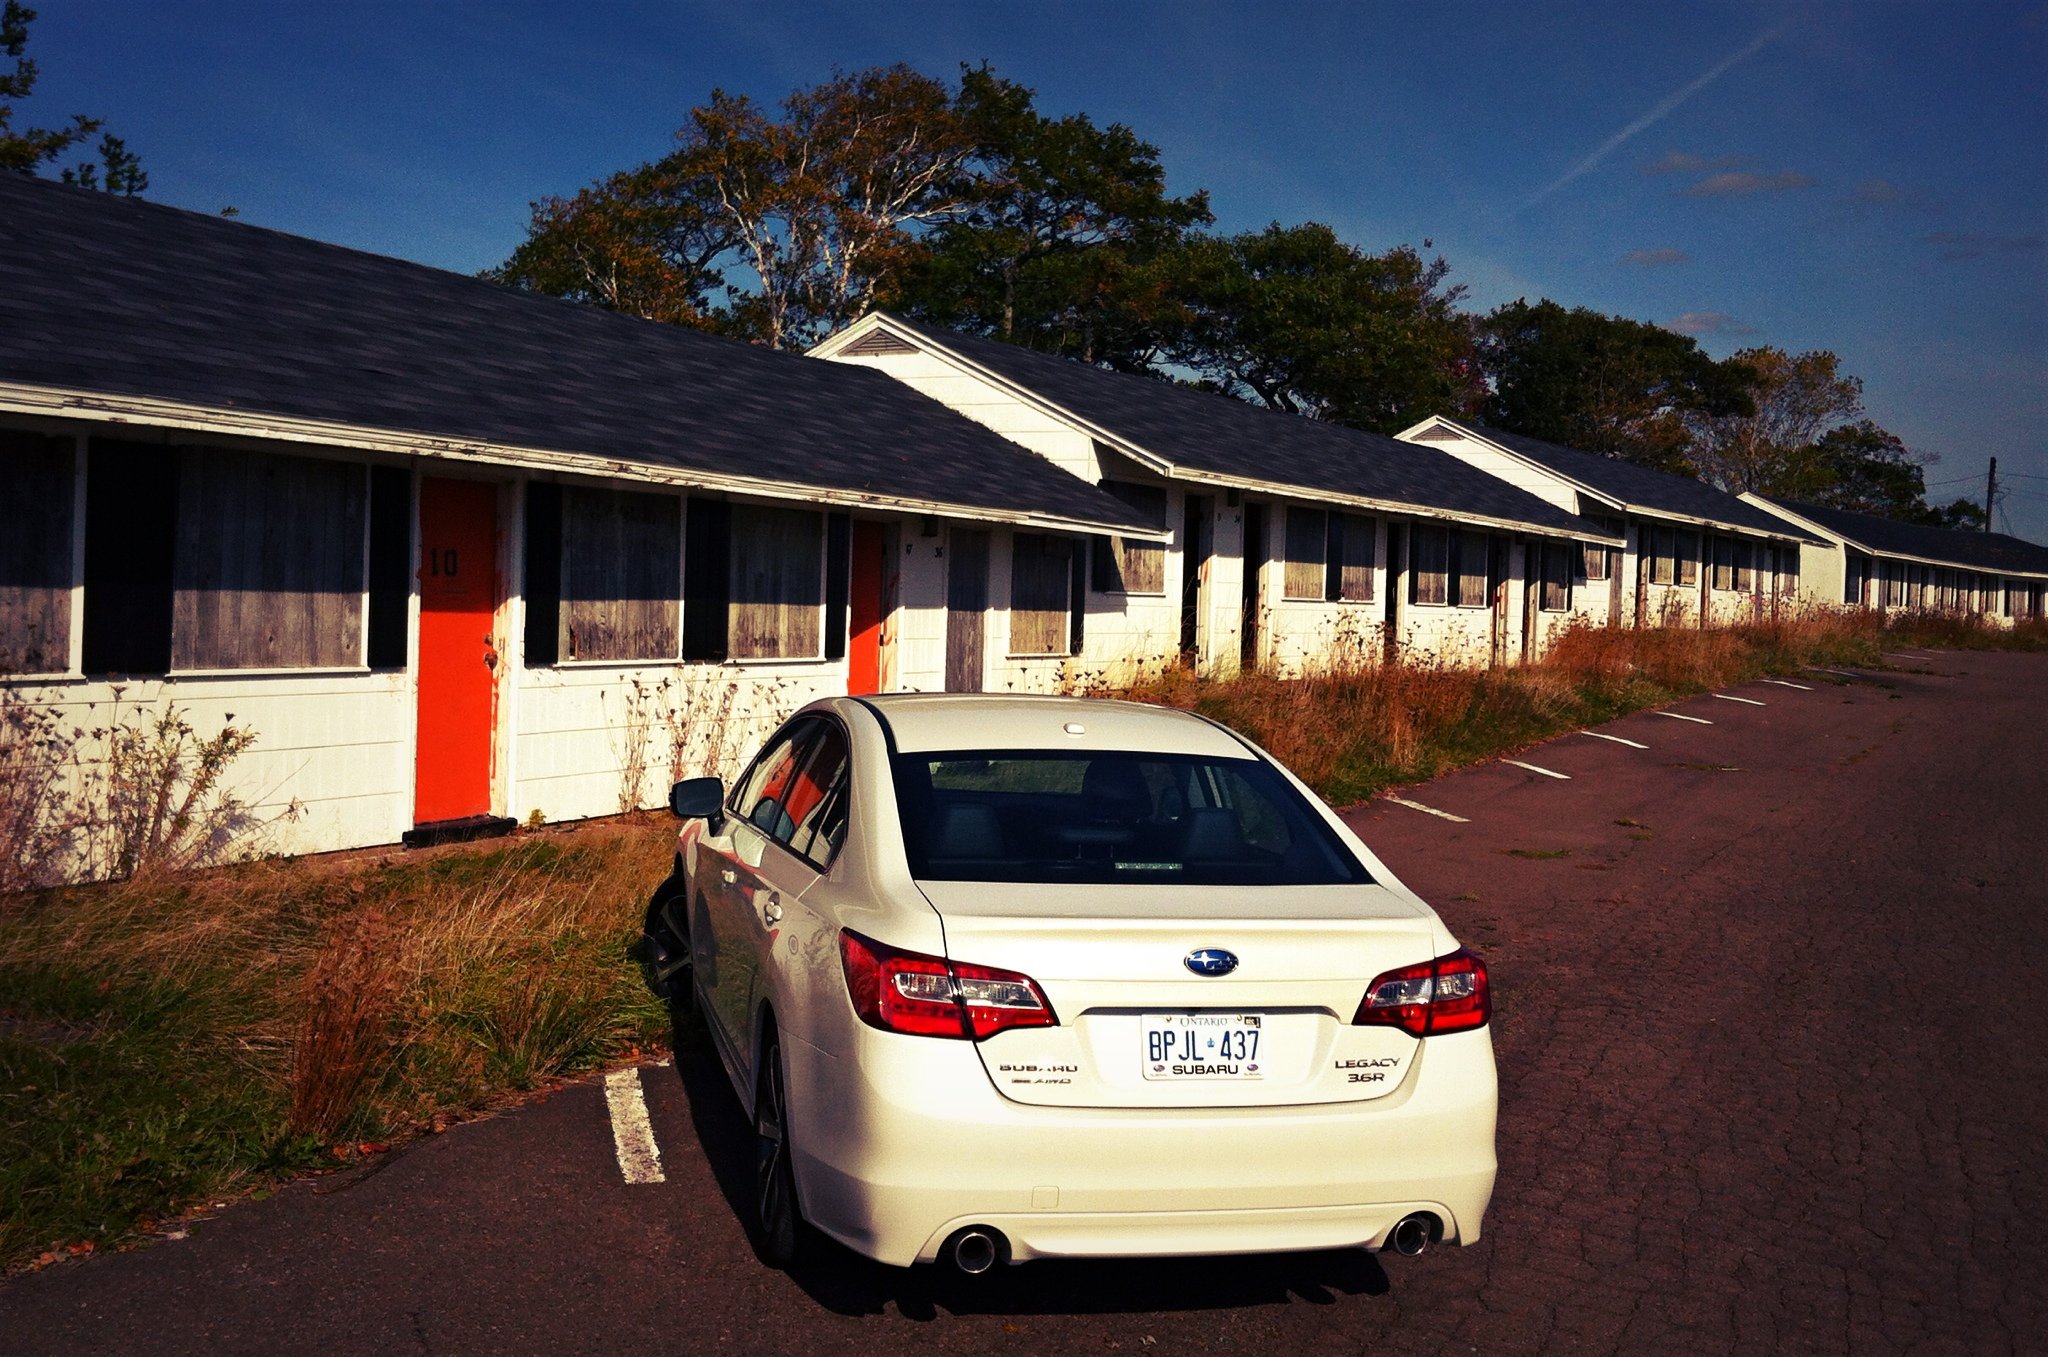 Subaru Legacy 3.6 R >> Capsule Review: 2015 Subaru Legacy 3.6R Limited - The Truth About Cars